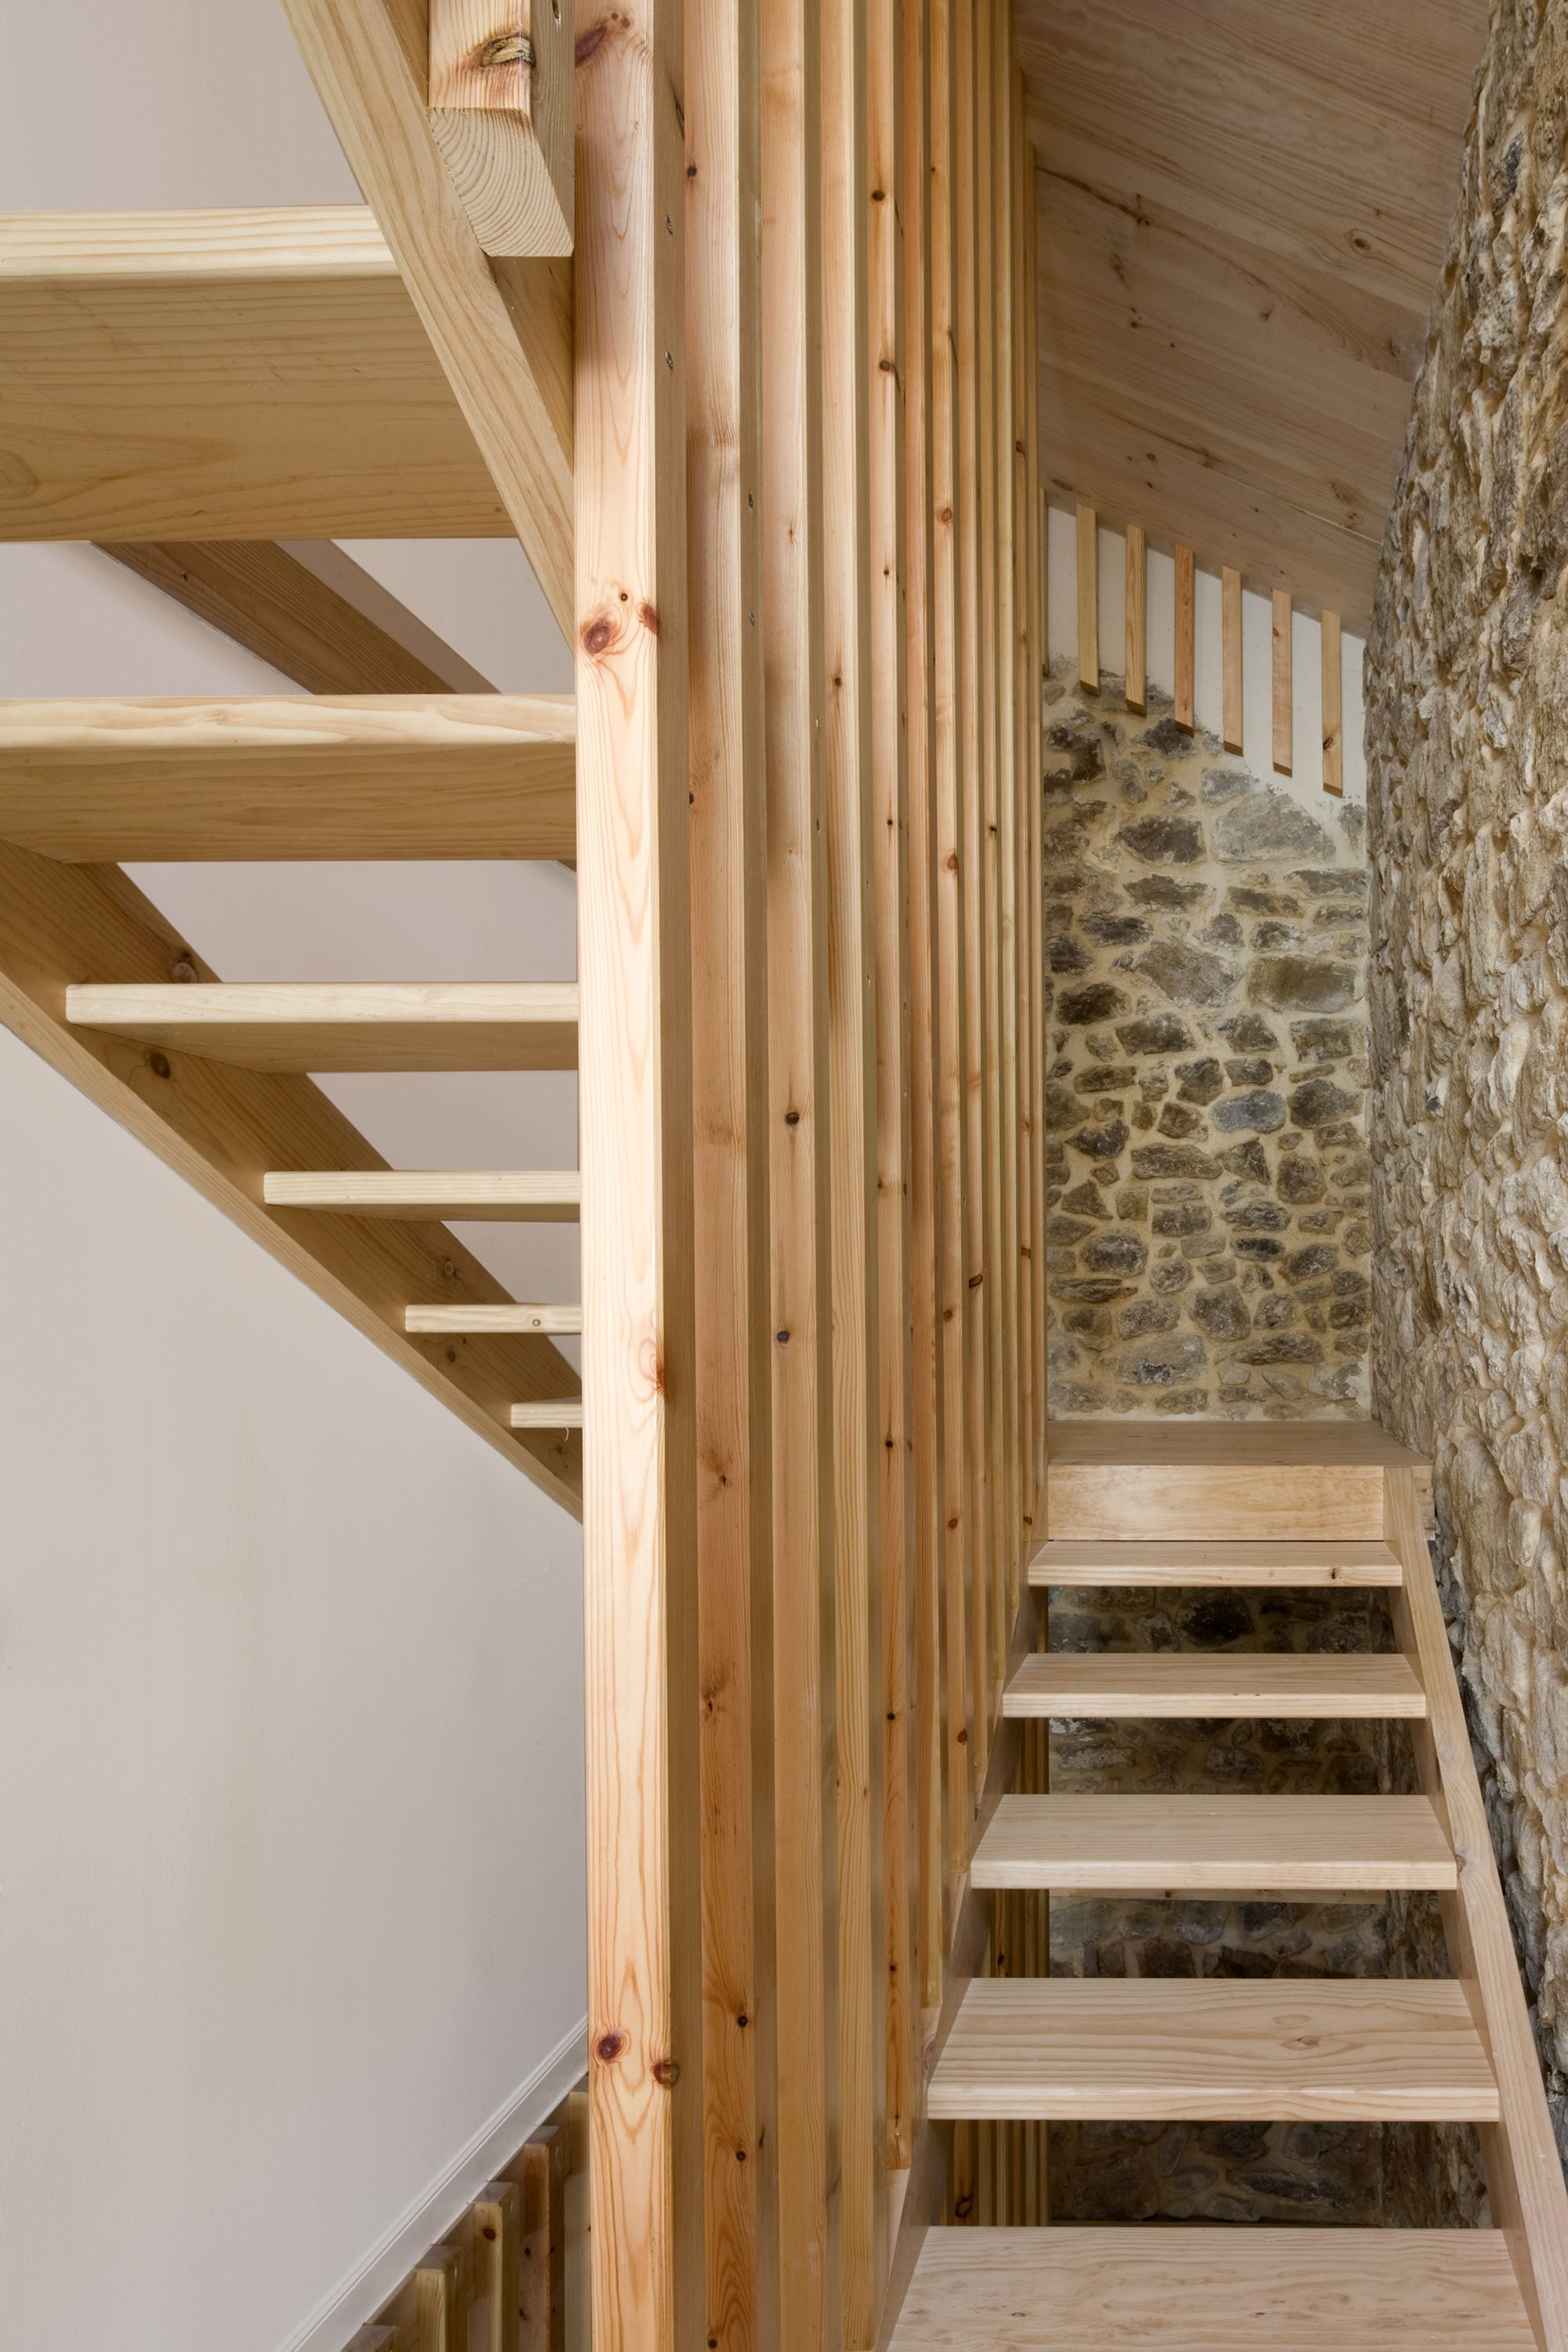 Escaleras de madera yahoo image search results - Escaleras interiores de madera ...